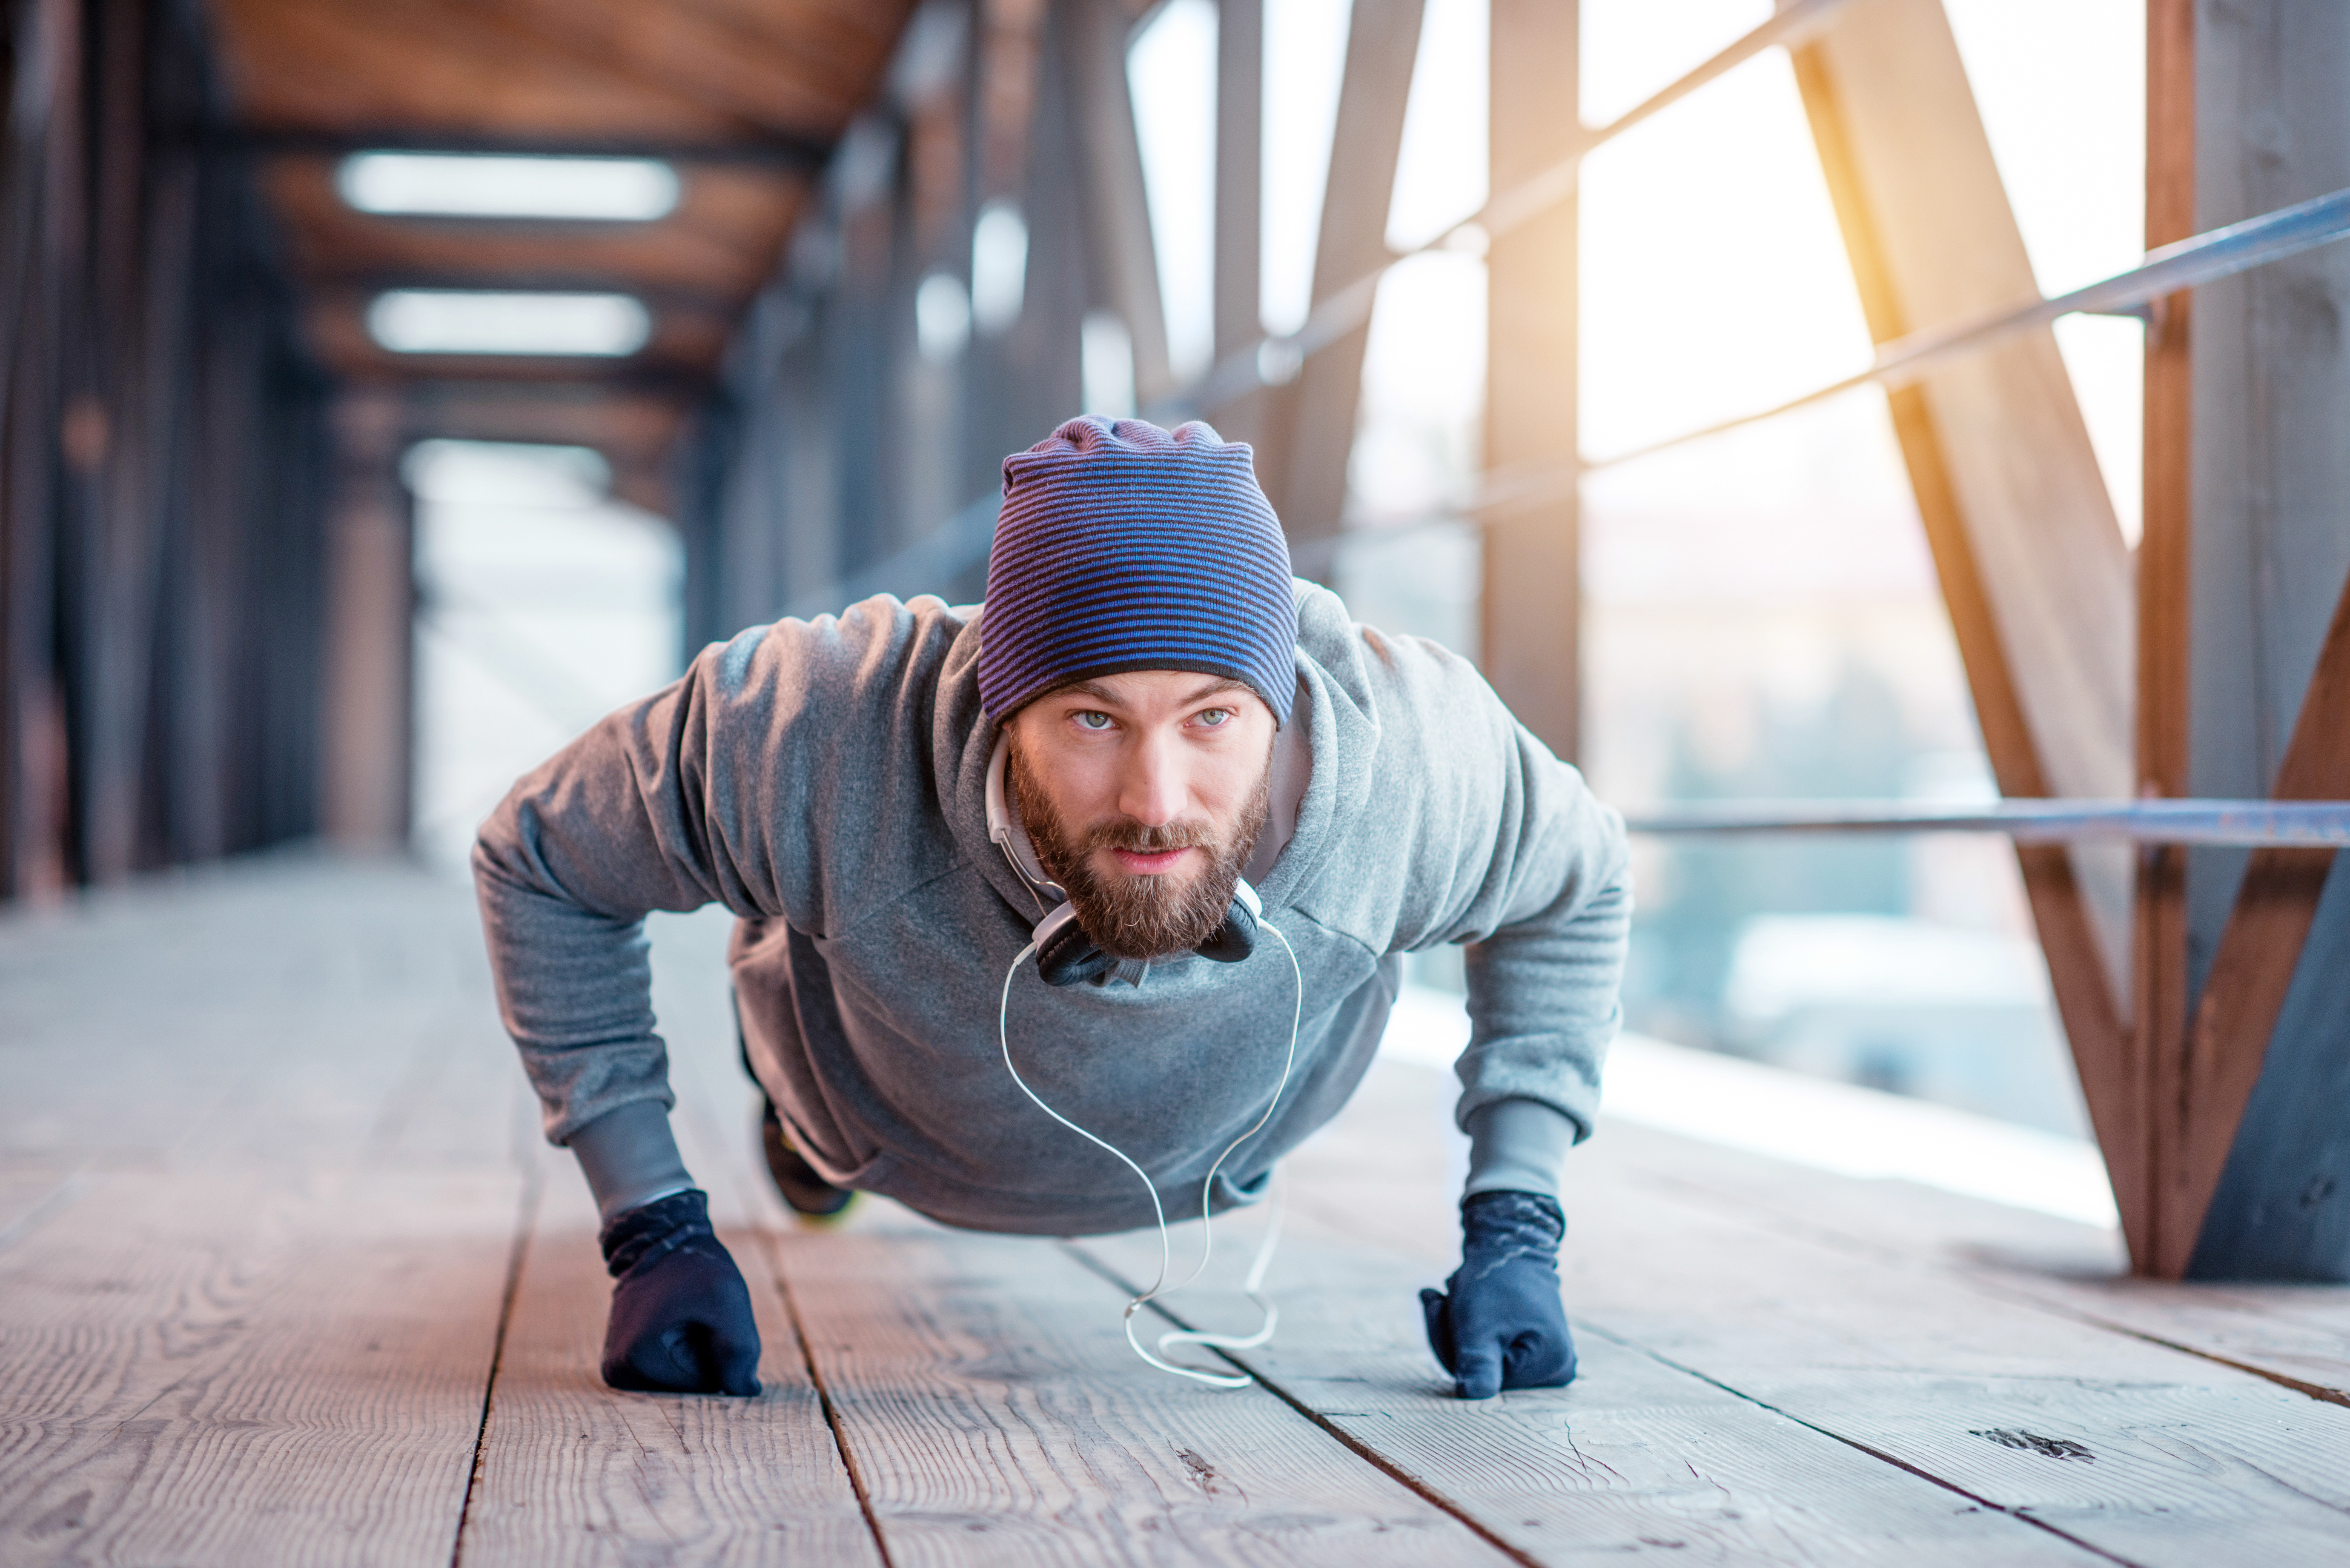 Staying motivated to exercise when it's cold outside